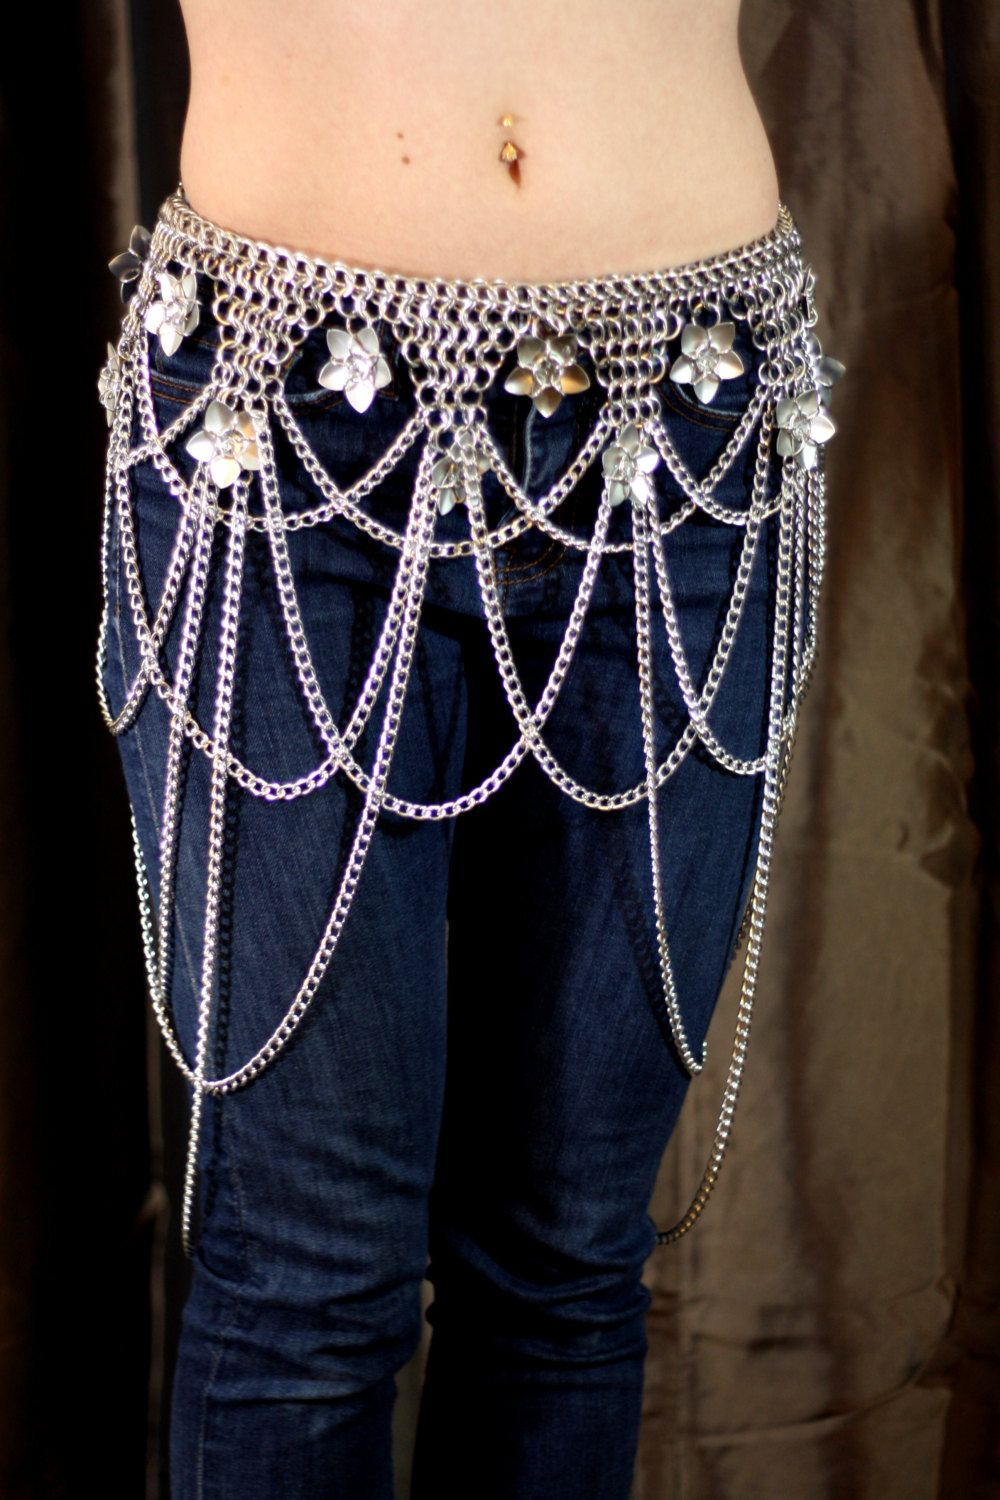 Exquisite+Chainmail+Drape+Flower+Belt+by+UtopiaArmoury+on+Etsy,+$135.00